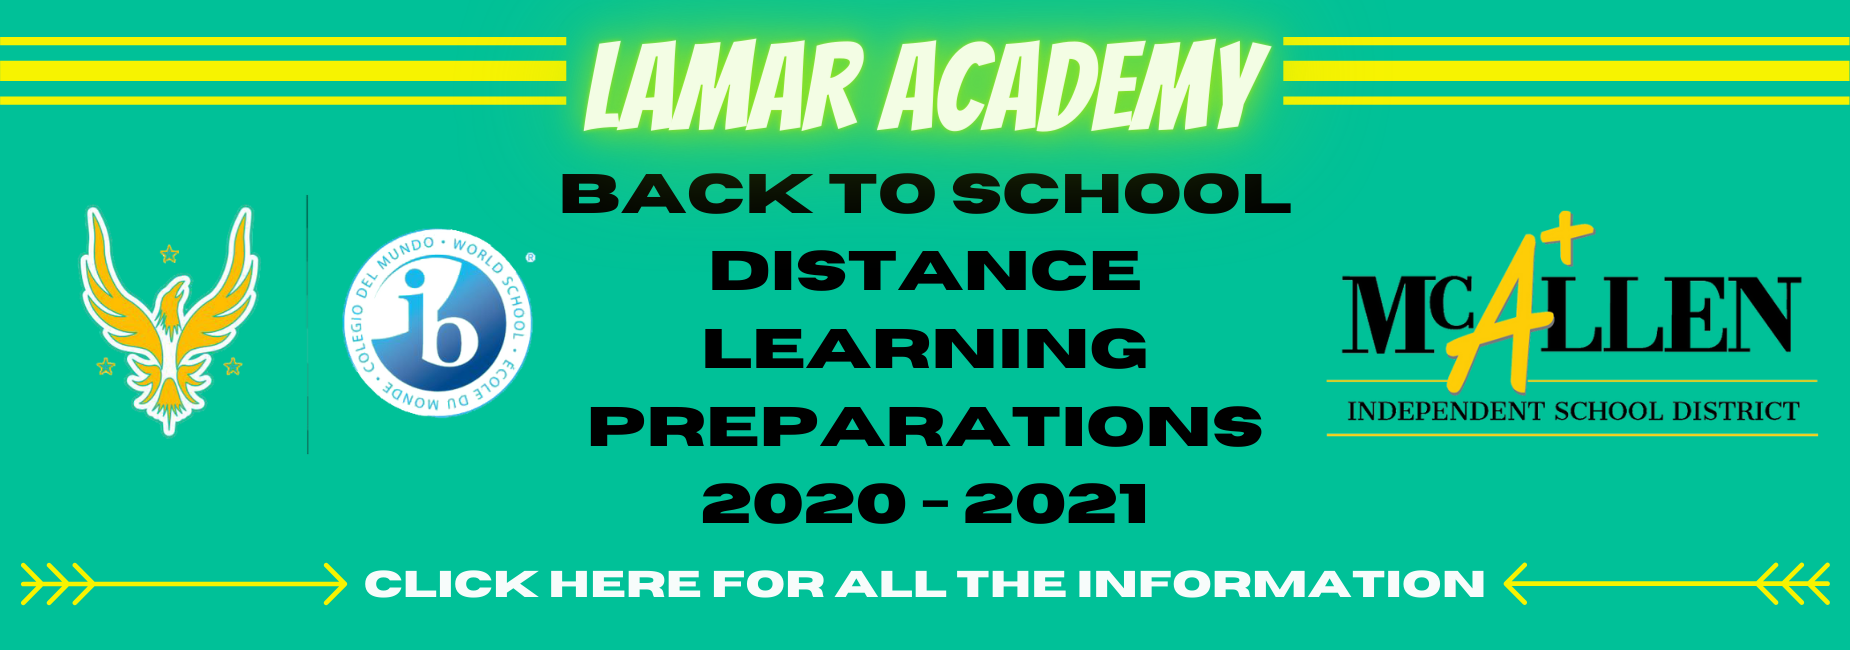 2020-2021 Distance learning preperations